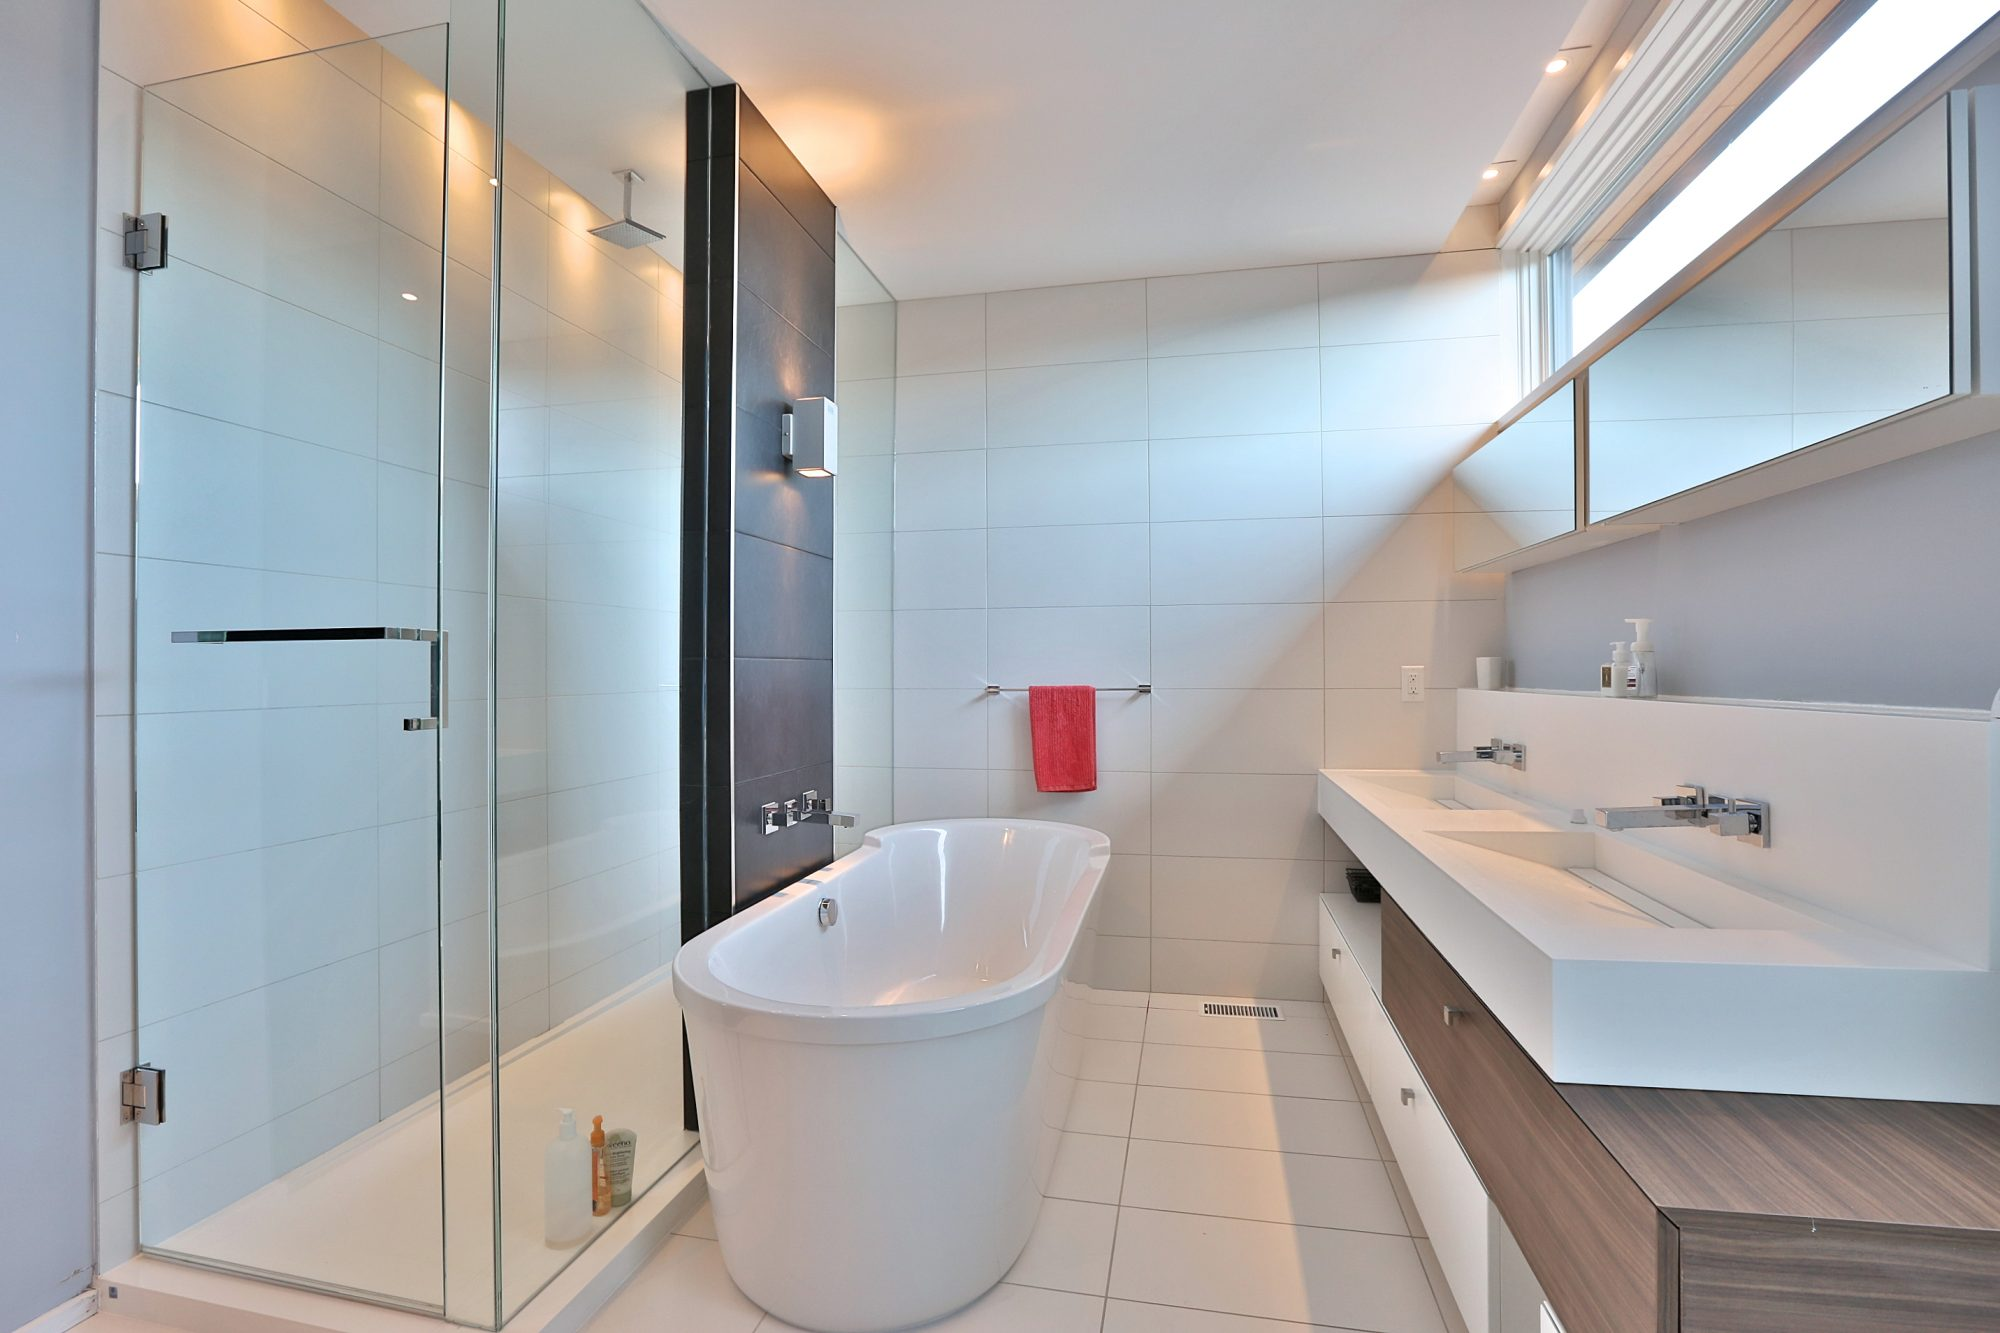 toronto-house-of-the-week-241-claremont-avenue-10